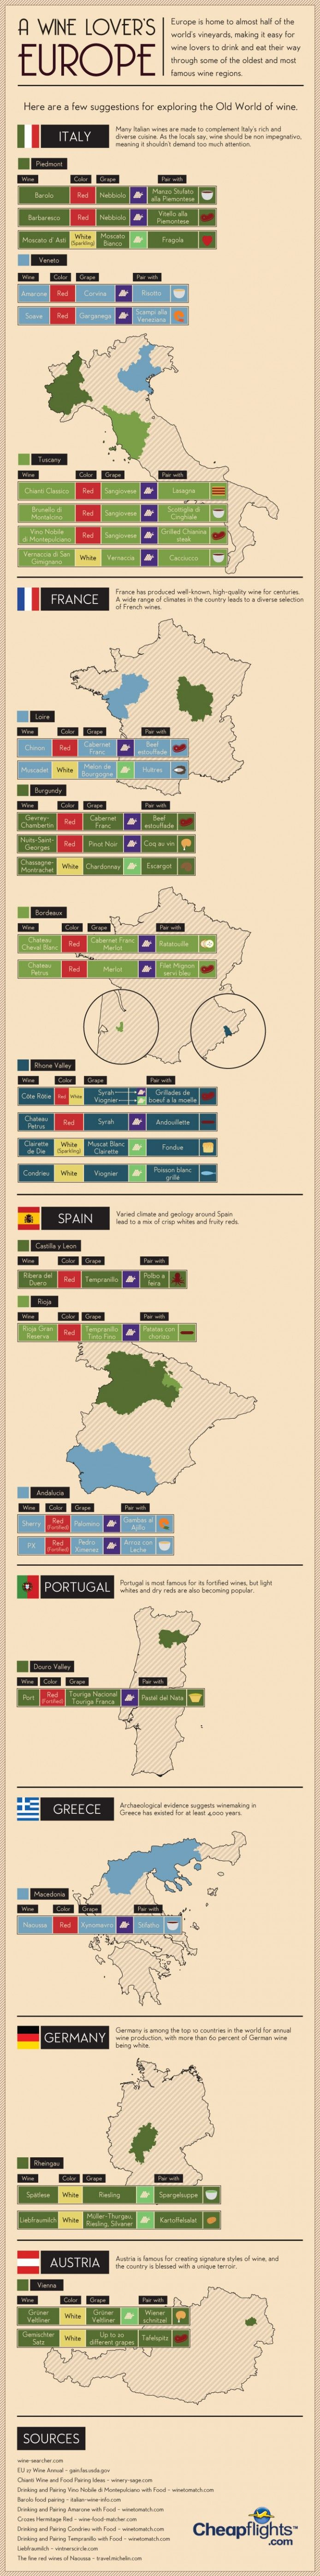 The Wine Lover's Guide to Europe -  http://www.finedininglovers.com/blog/food-drinks/infographic-the-wine-lover-s-guide-to-europe/